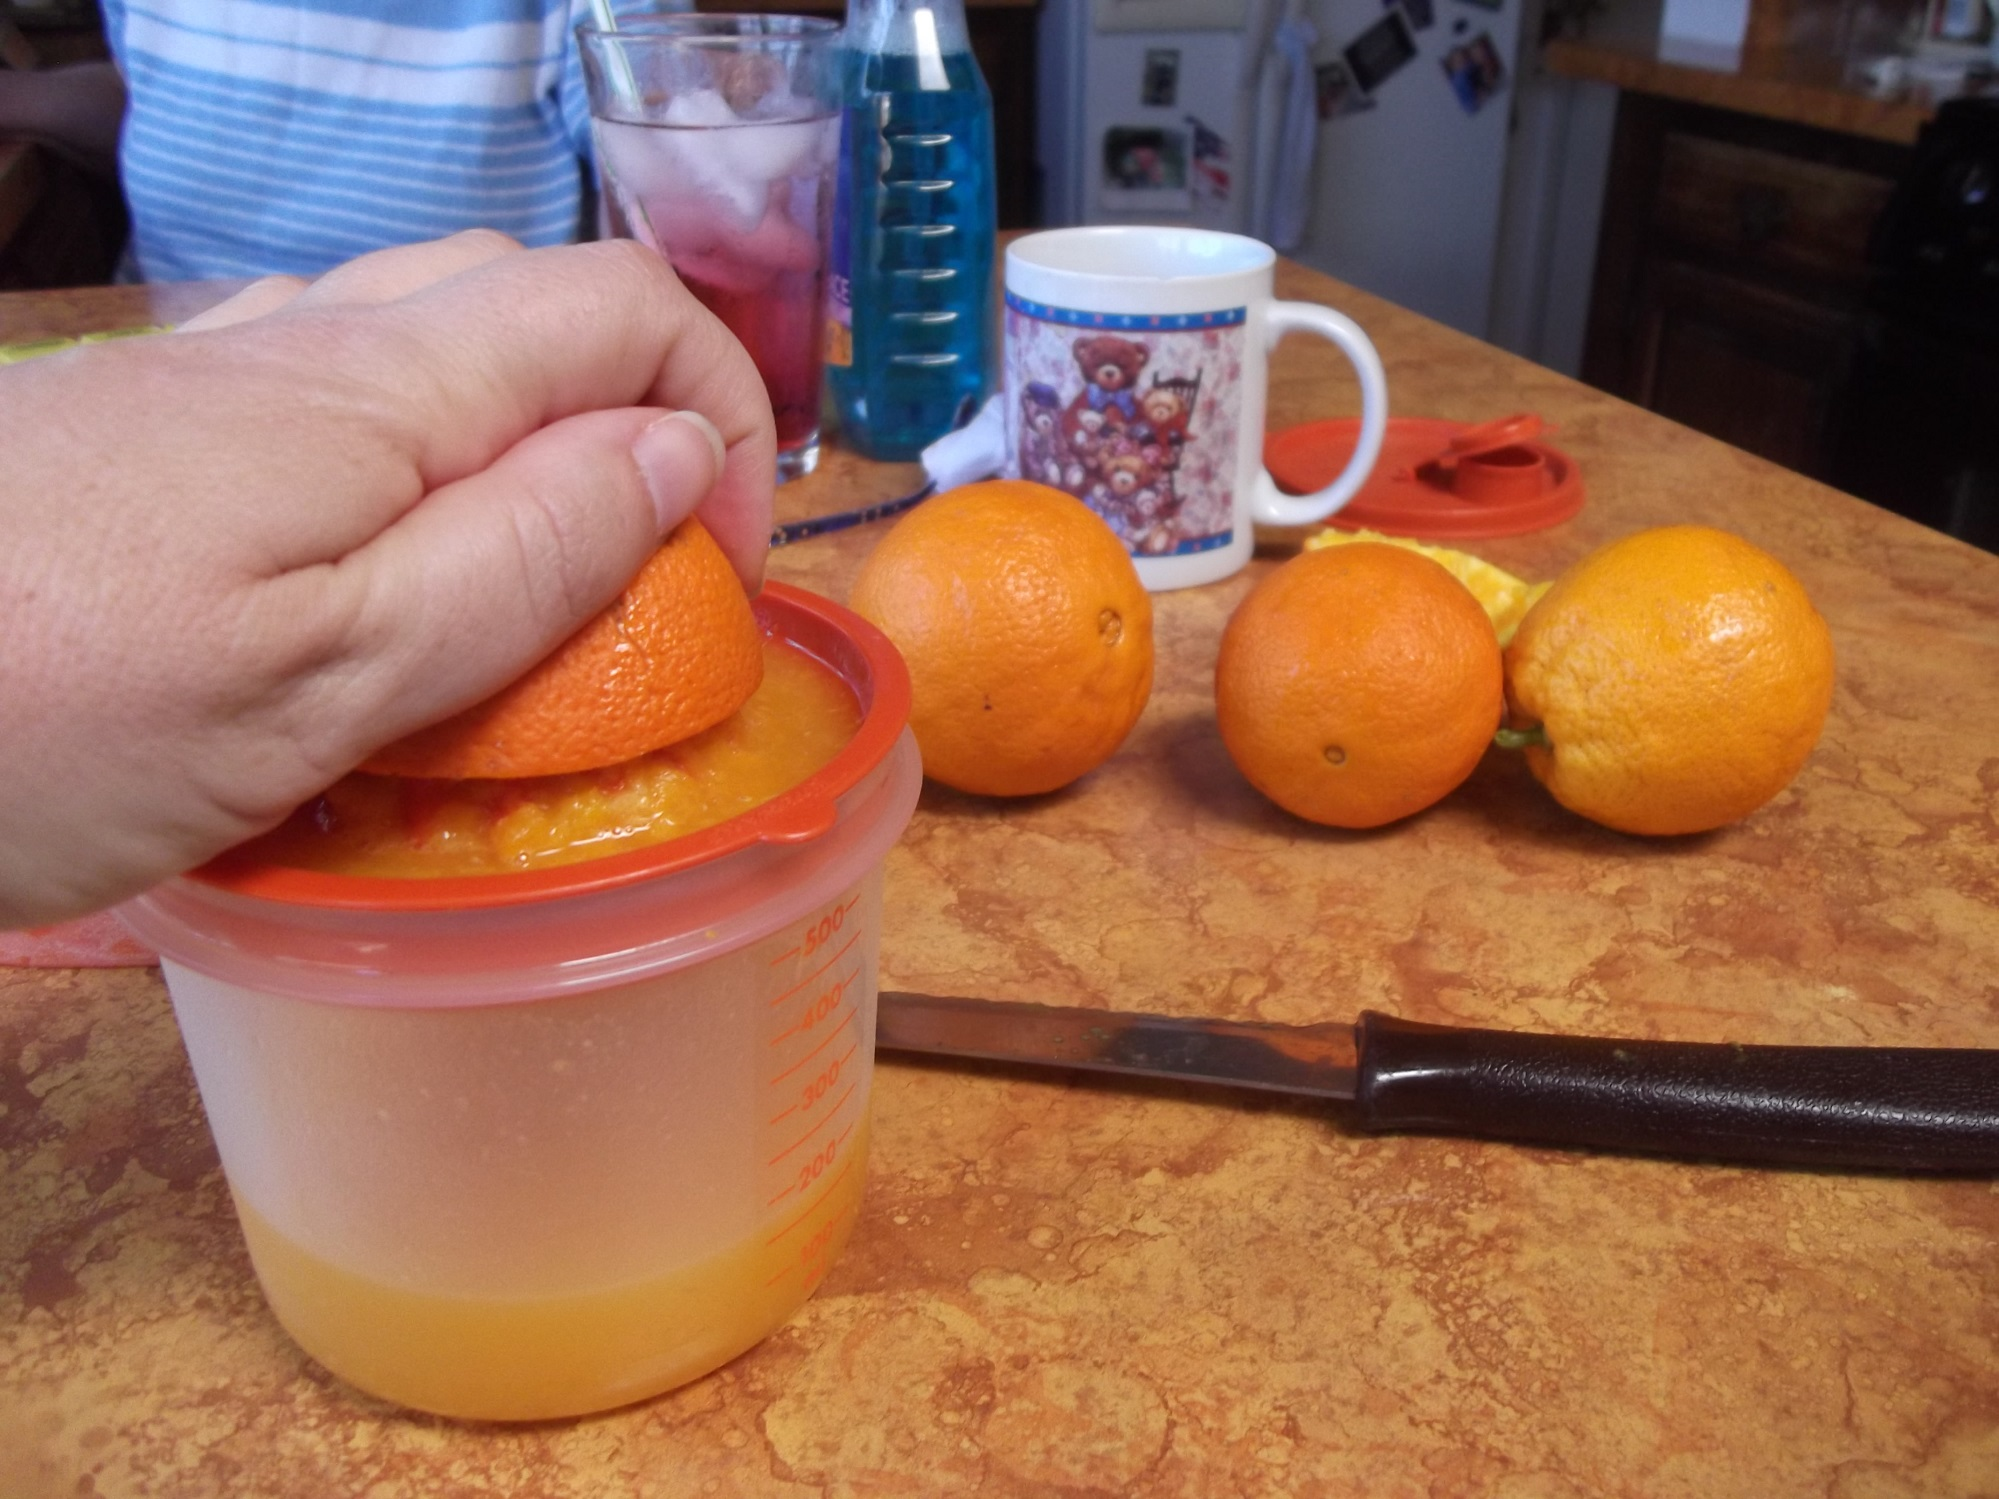 Photos I took of our orange tree out front and me juicing oranges